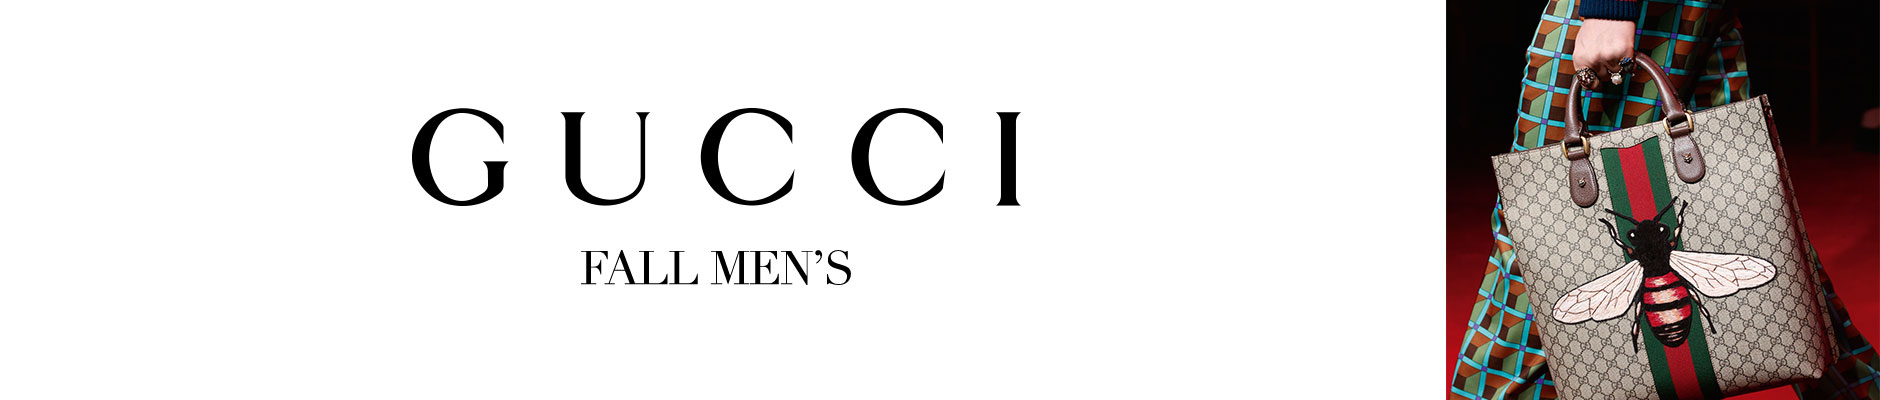 Gucci - Fall Men's